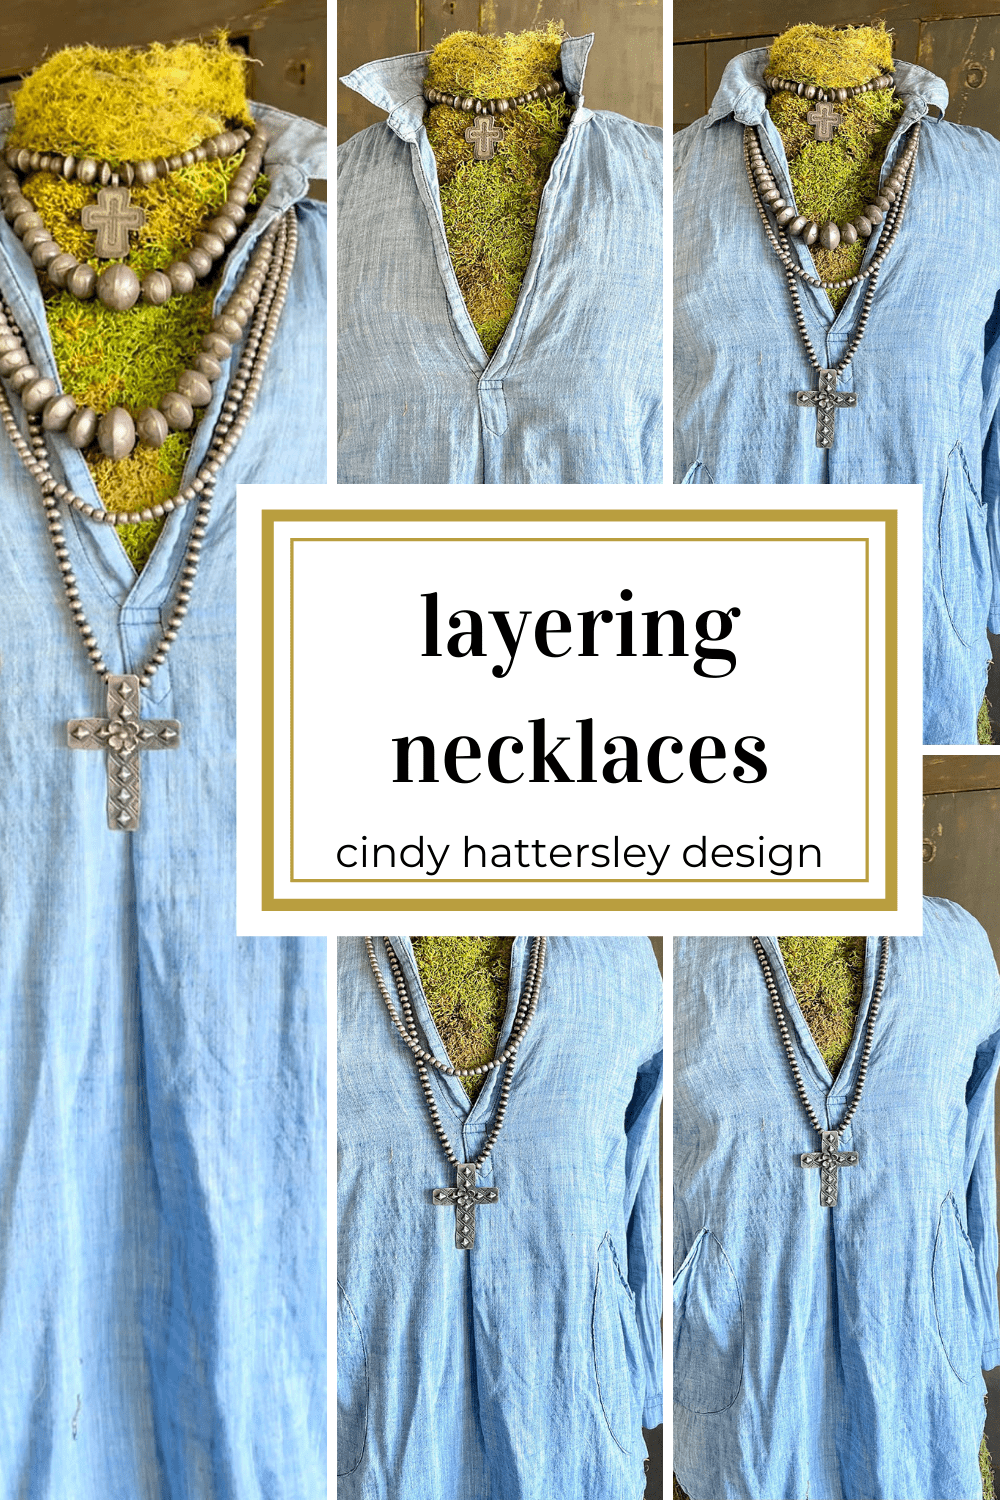 layering necklaces on cp shades cindy hattersley design